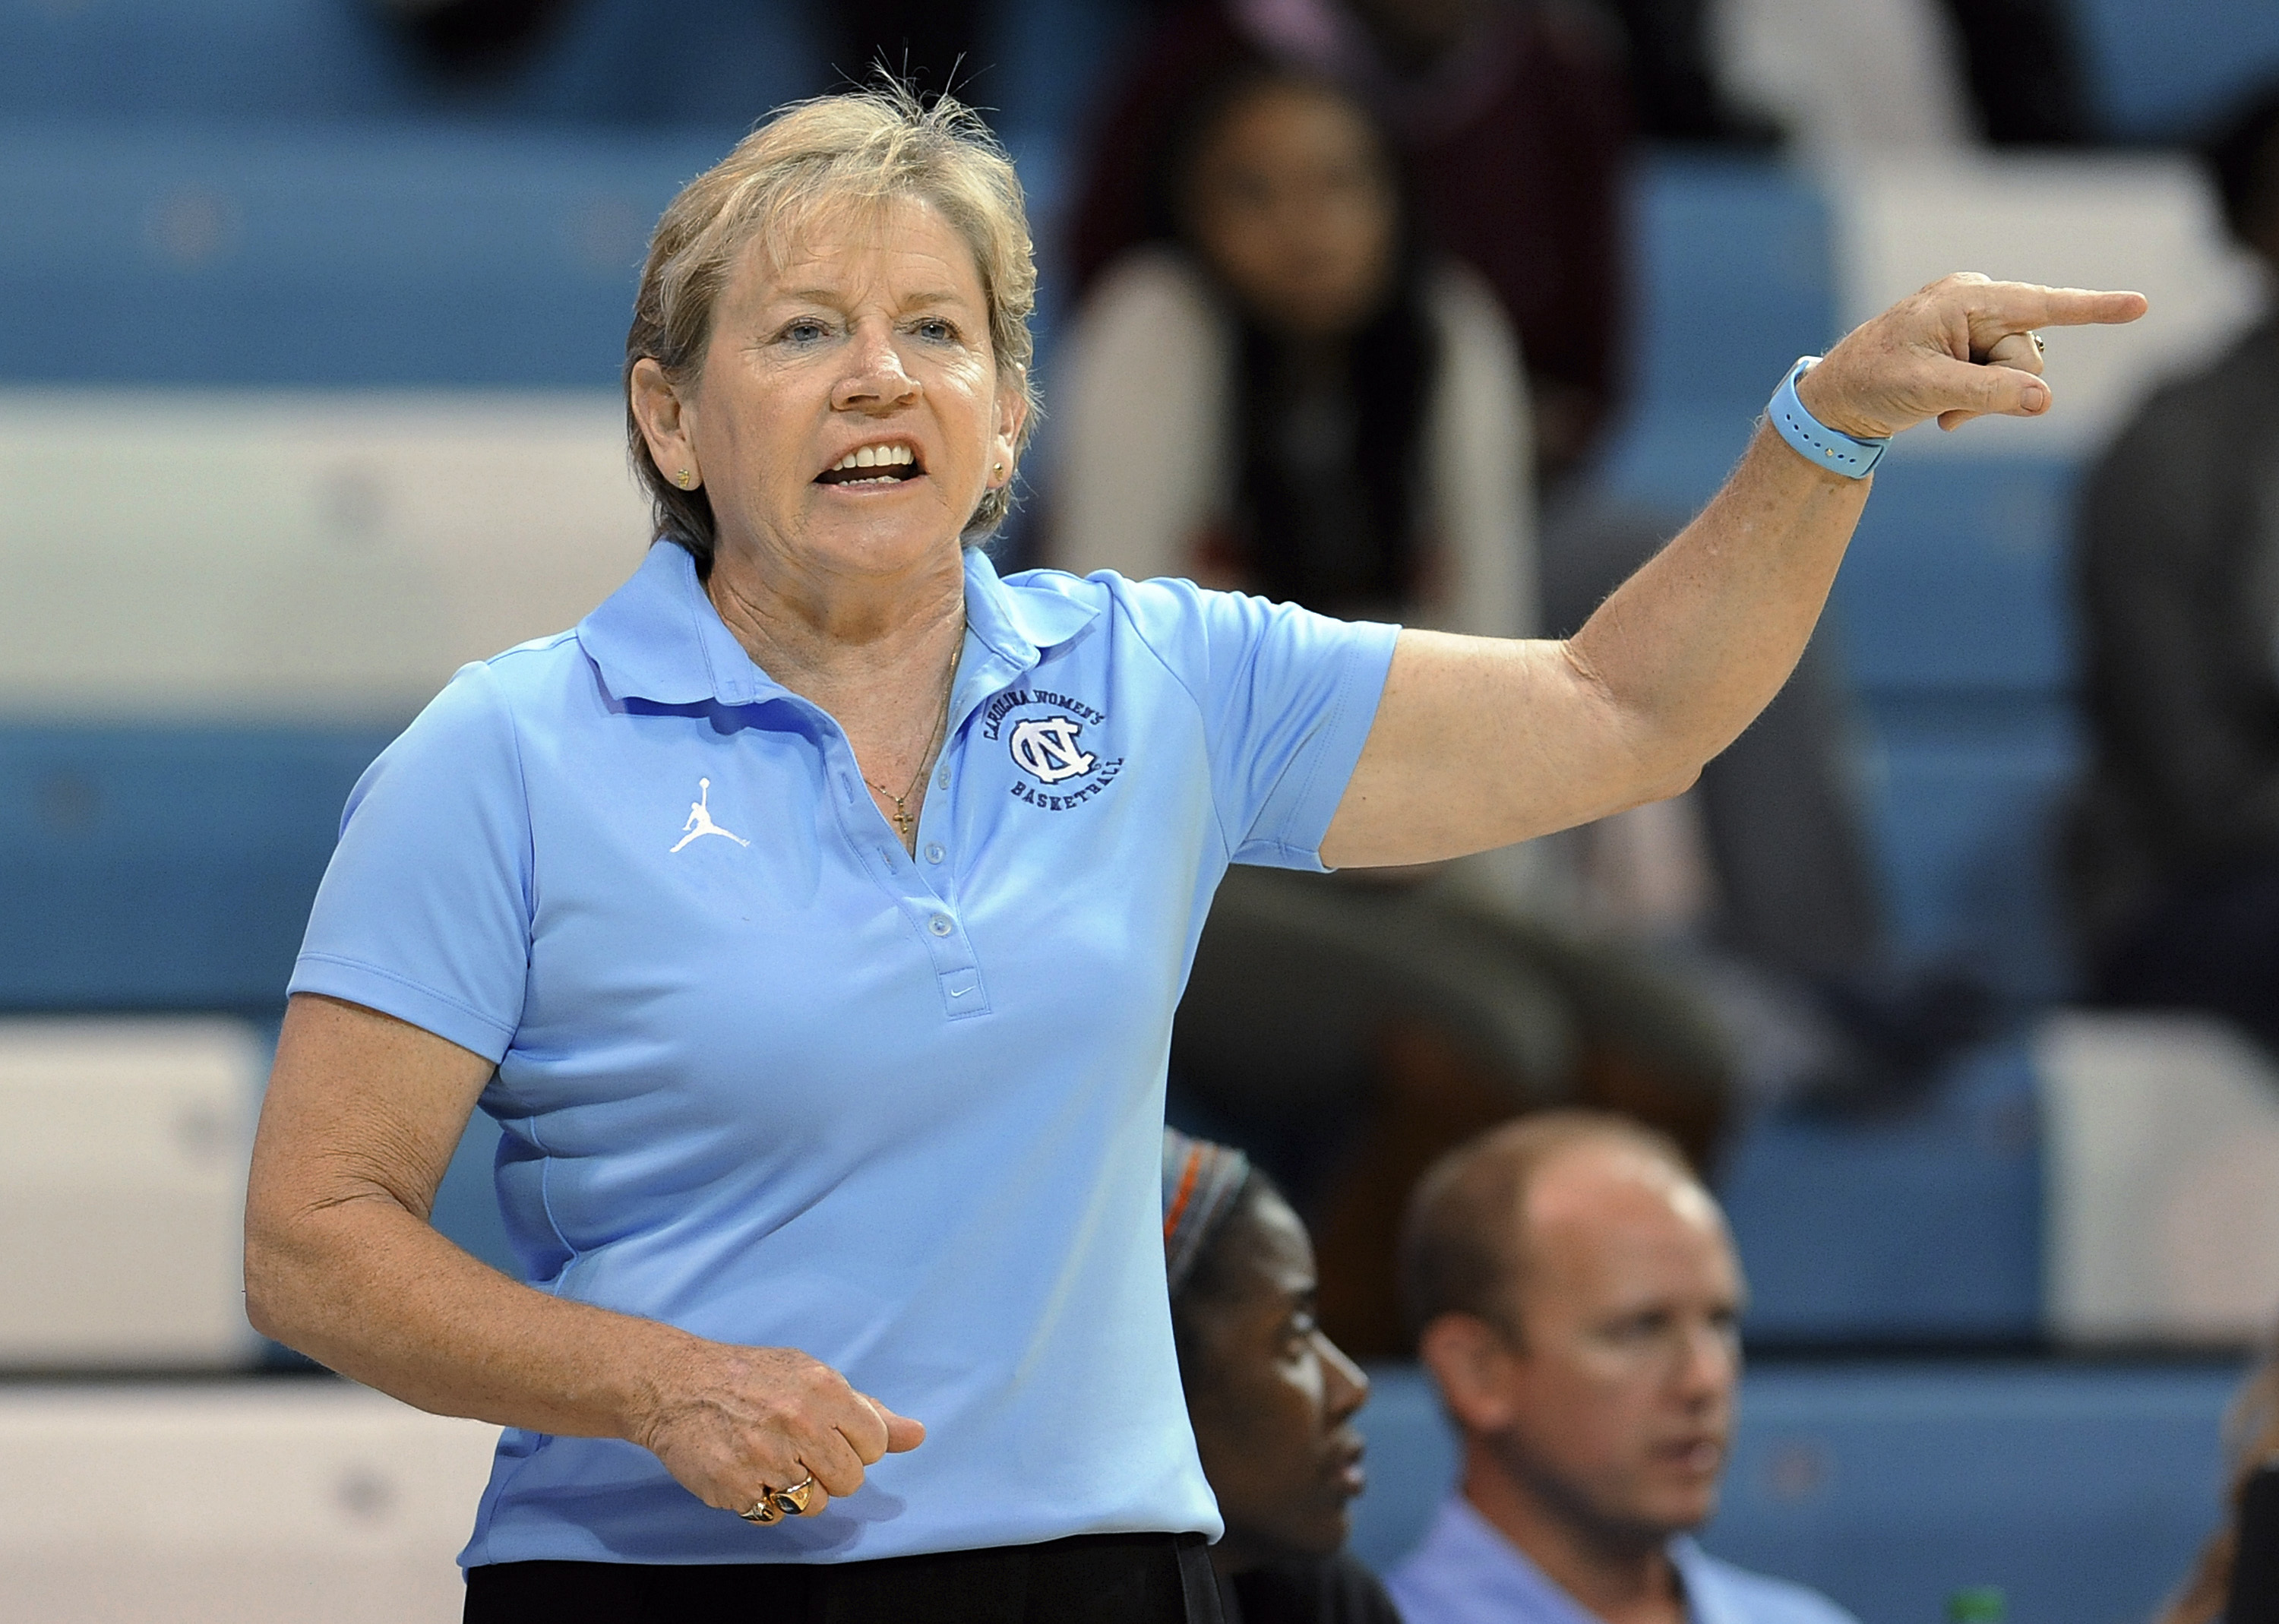 FILE - In this Nov. 4, 2015, file photo, North Carolina coach Sylvia Hatchell reacts to a call during her team's exhibition college basketball game against Wingate in Chapel Hill, NC. UNC announced a two-year extension through the 2019-20 season for Hatch